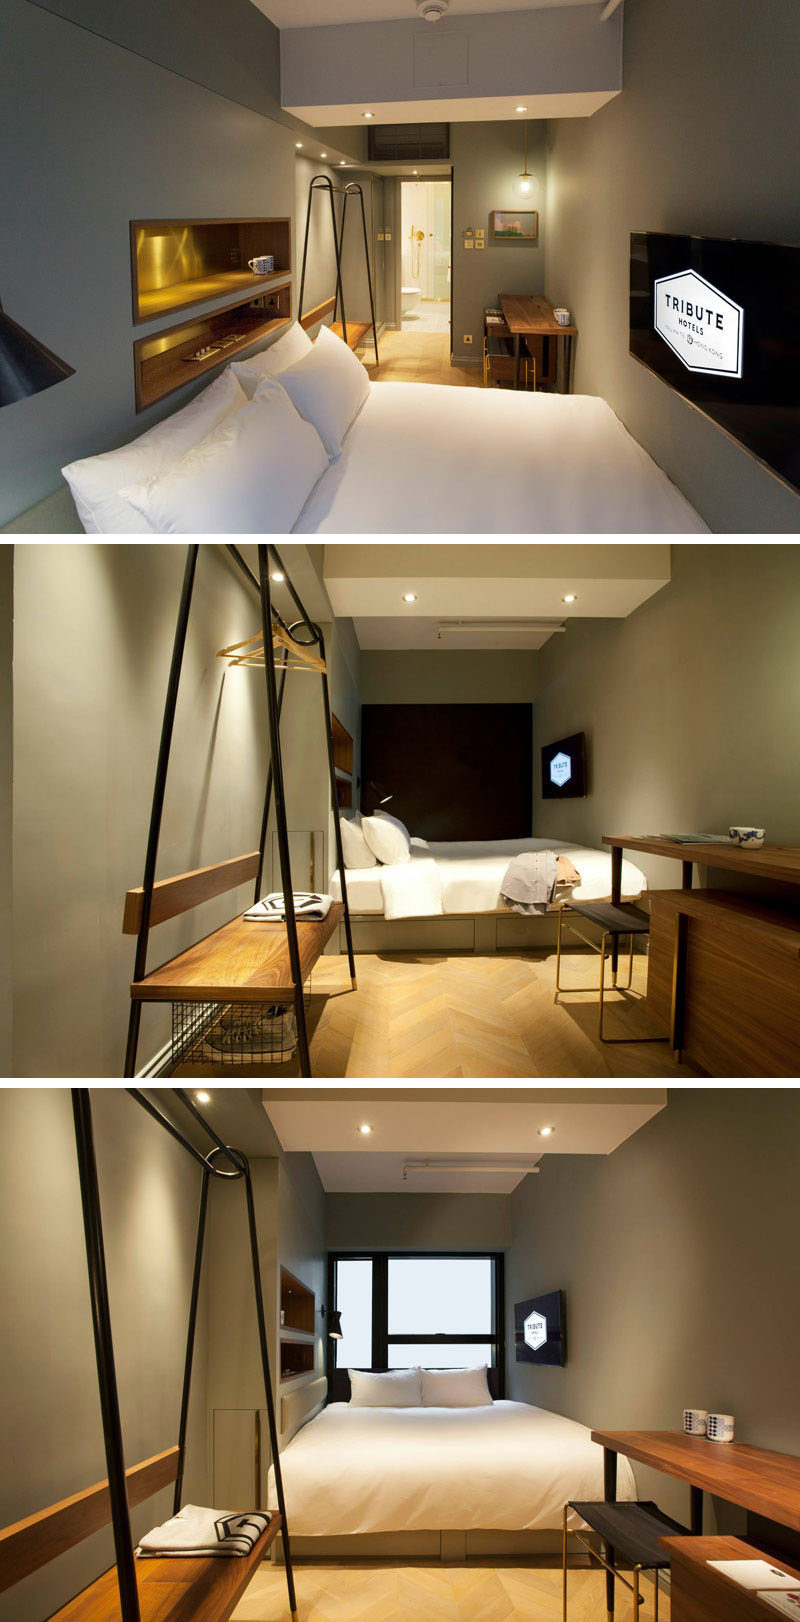 8 small hotel rooms that maximize their tiny space contemporist - Small spaces decorating ideas concept ...